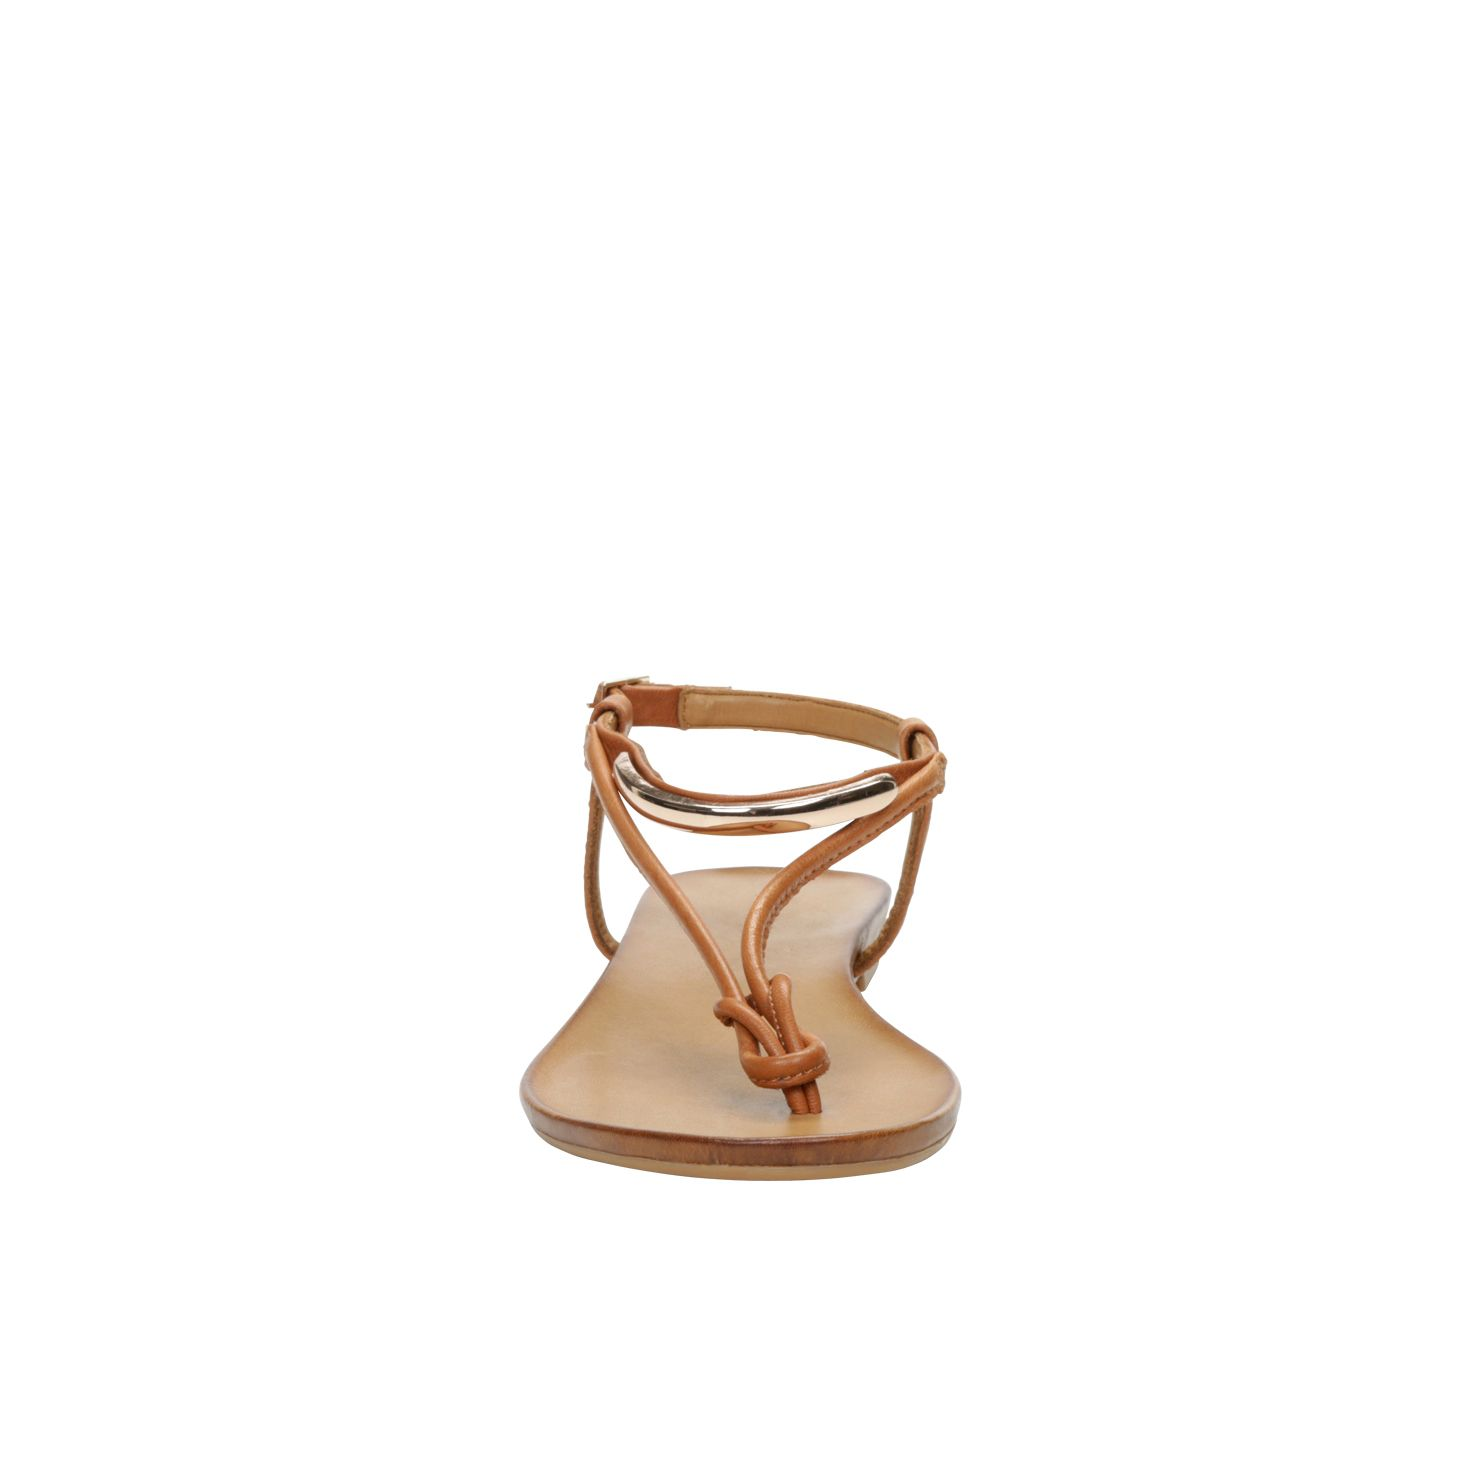 Eradodia flay t-bar sandals